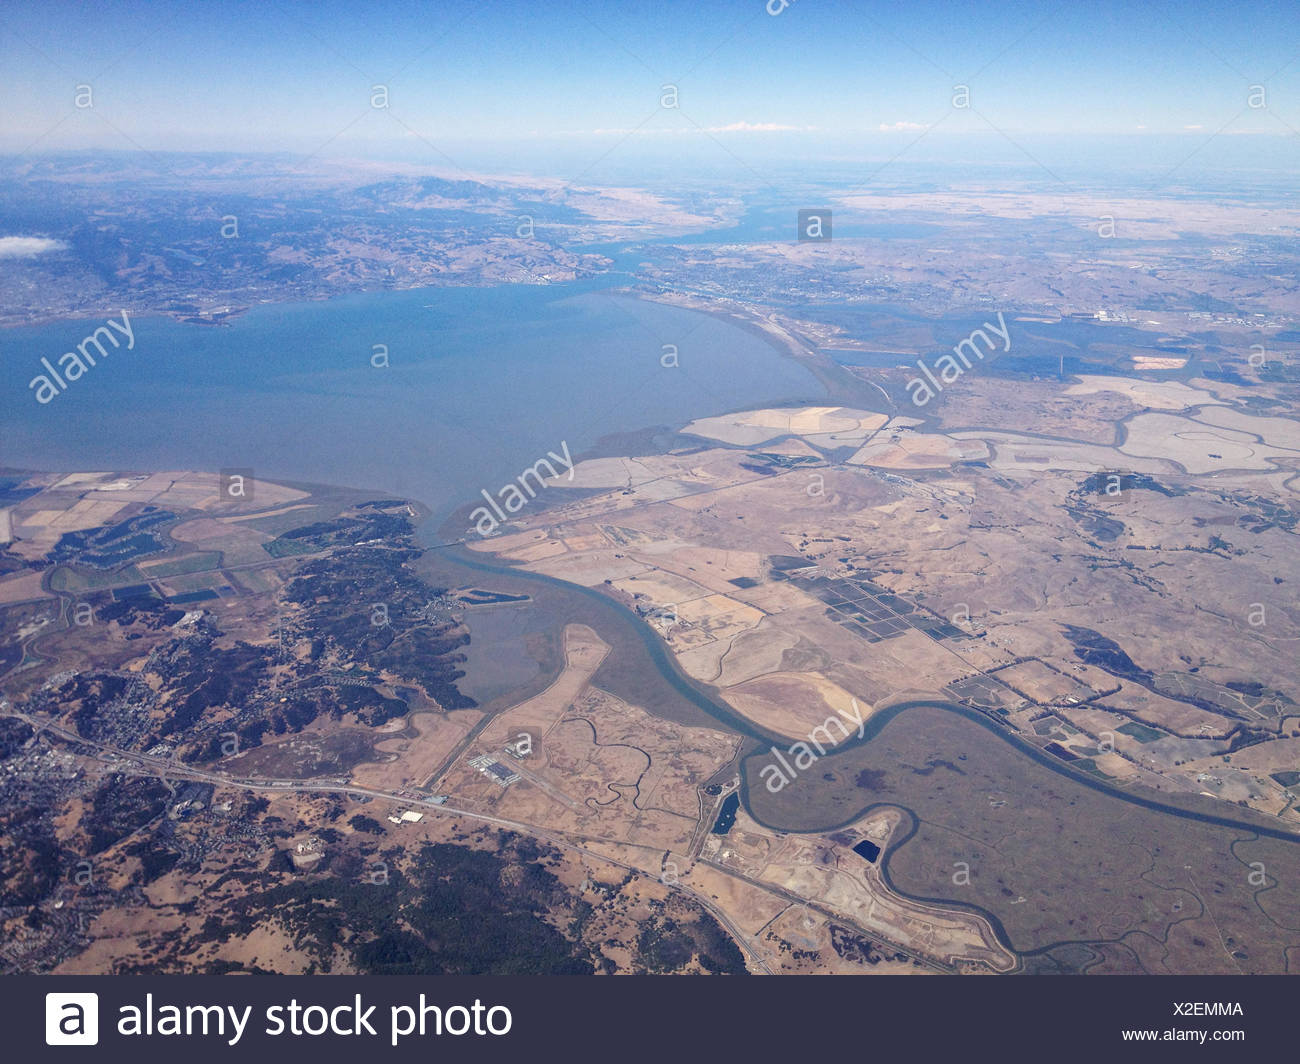 USA, California, Agricultural land and lake - Stock Image